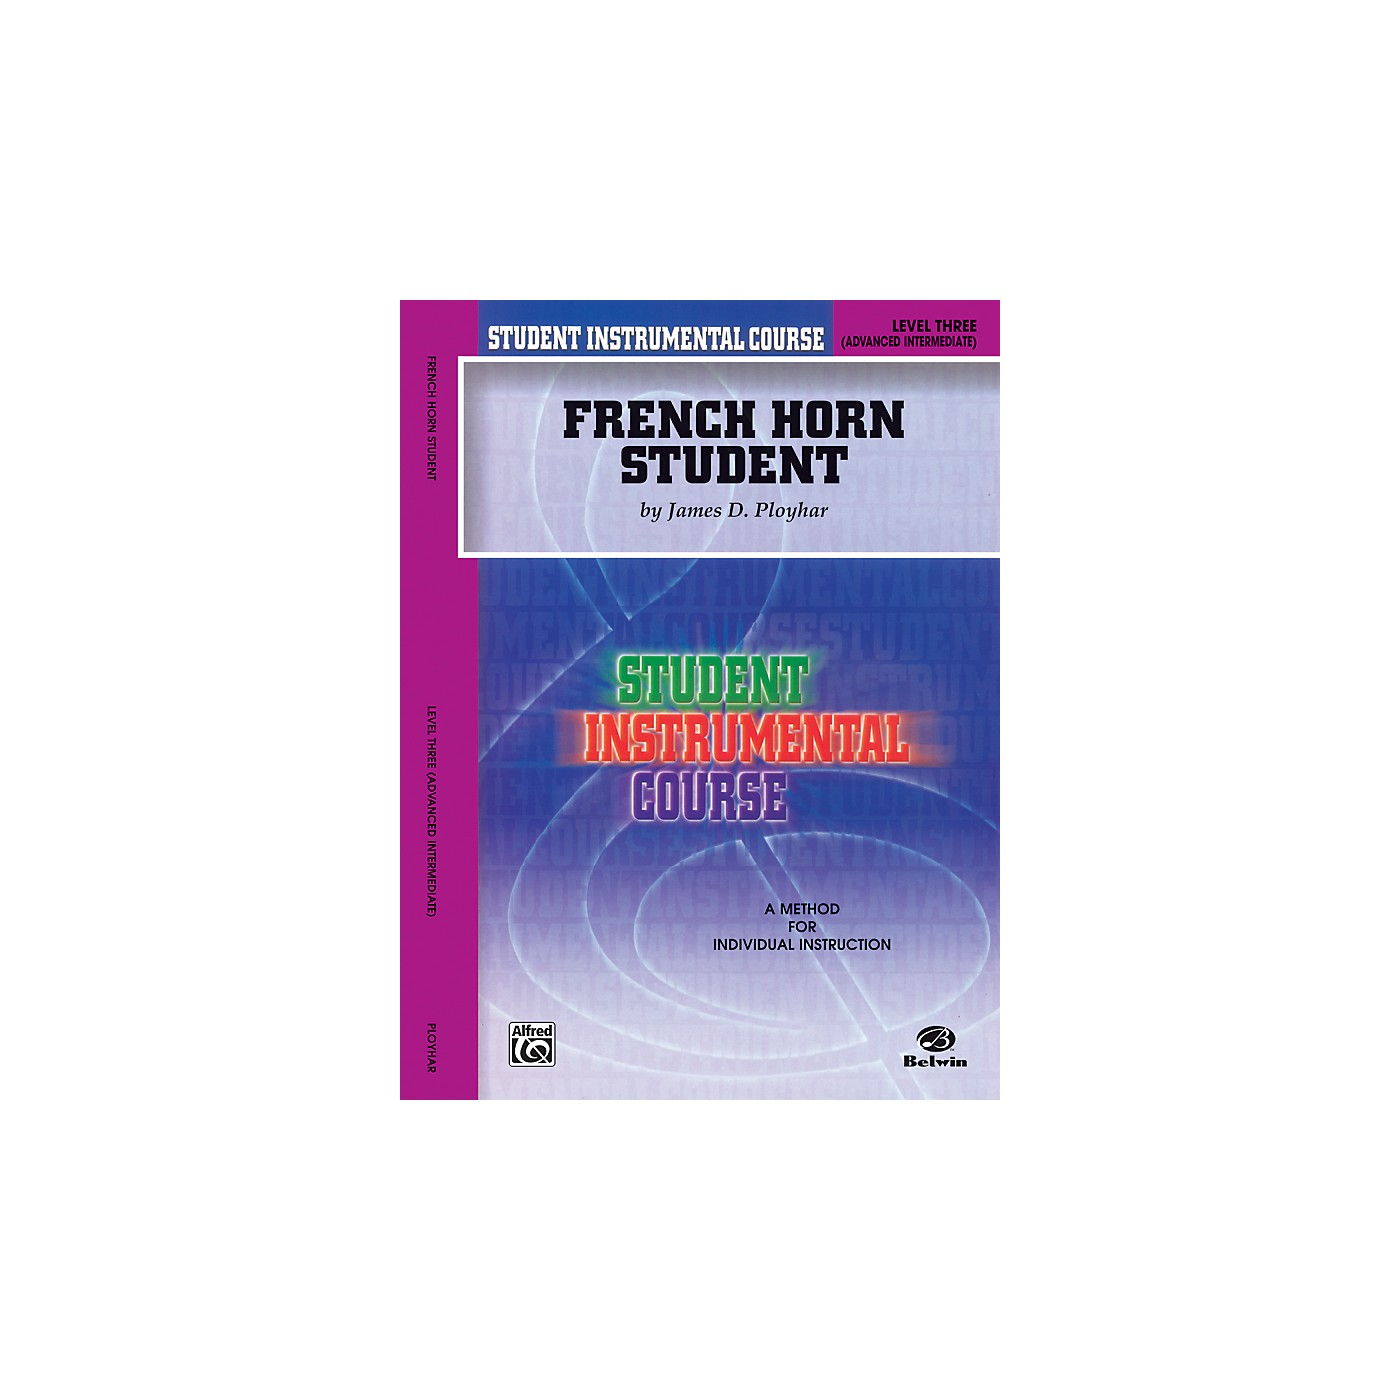 Alfred Student Instrumental Course French Horn Student Level 3 Book thumbnail